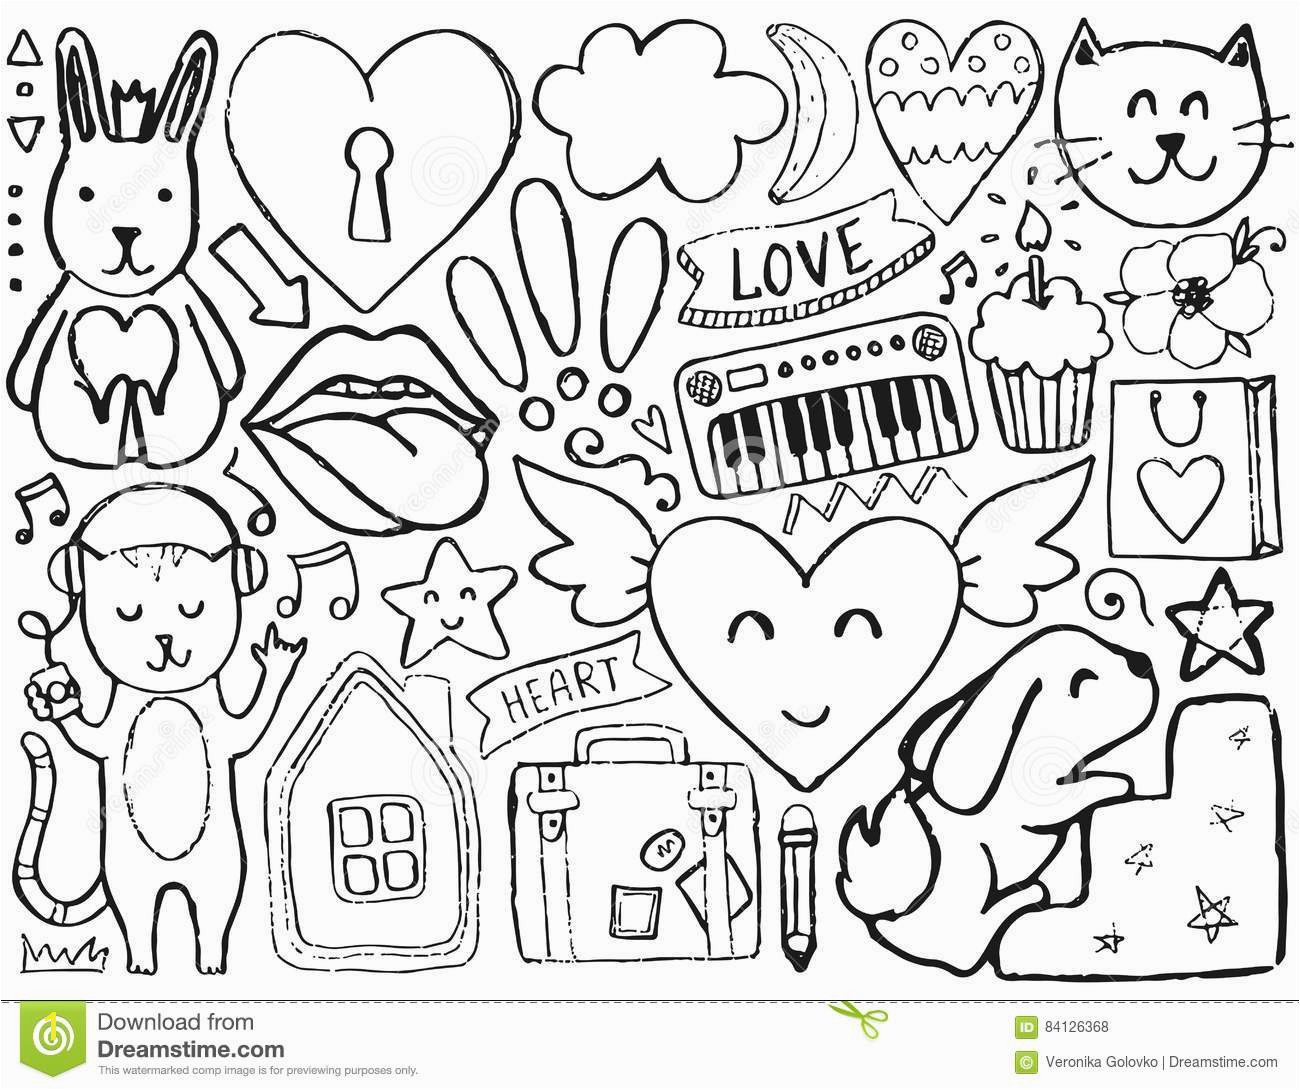 Vector coloring page Illustration with hearts and flowers animals and lips cloud and stars Design for prints and cards